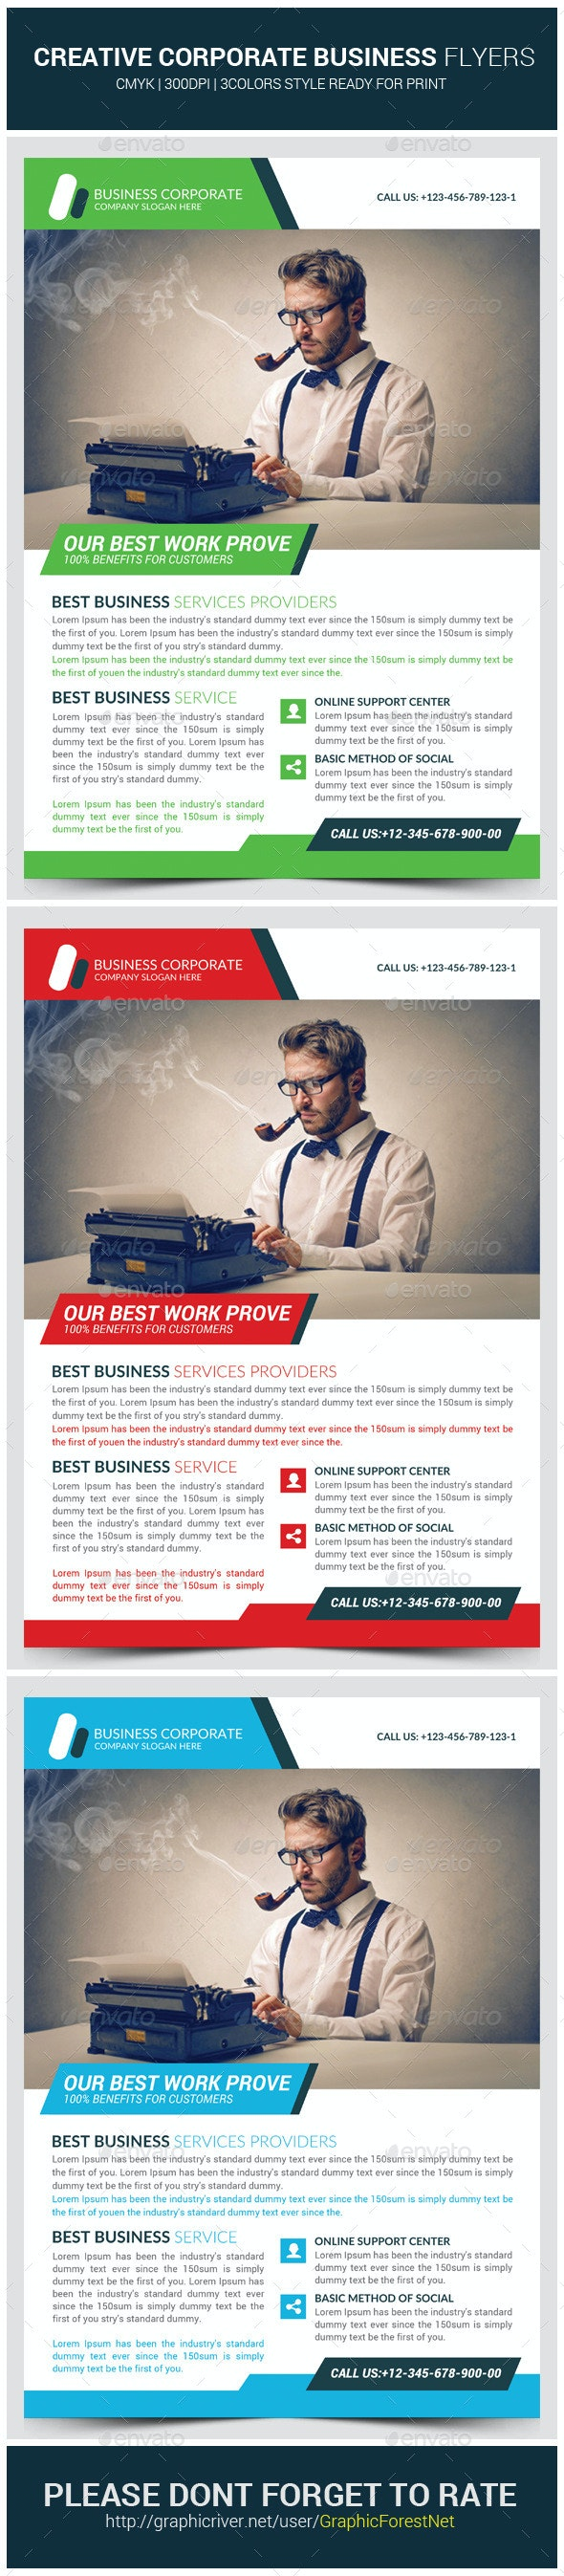 Creative Agency Corporate Flyer Template - Corporate Flyers